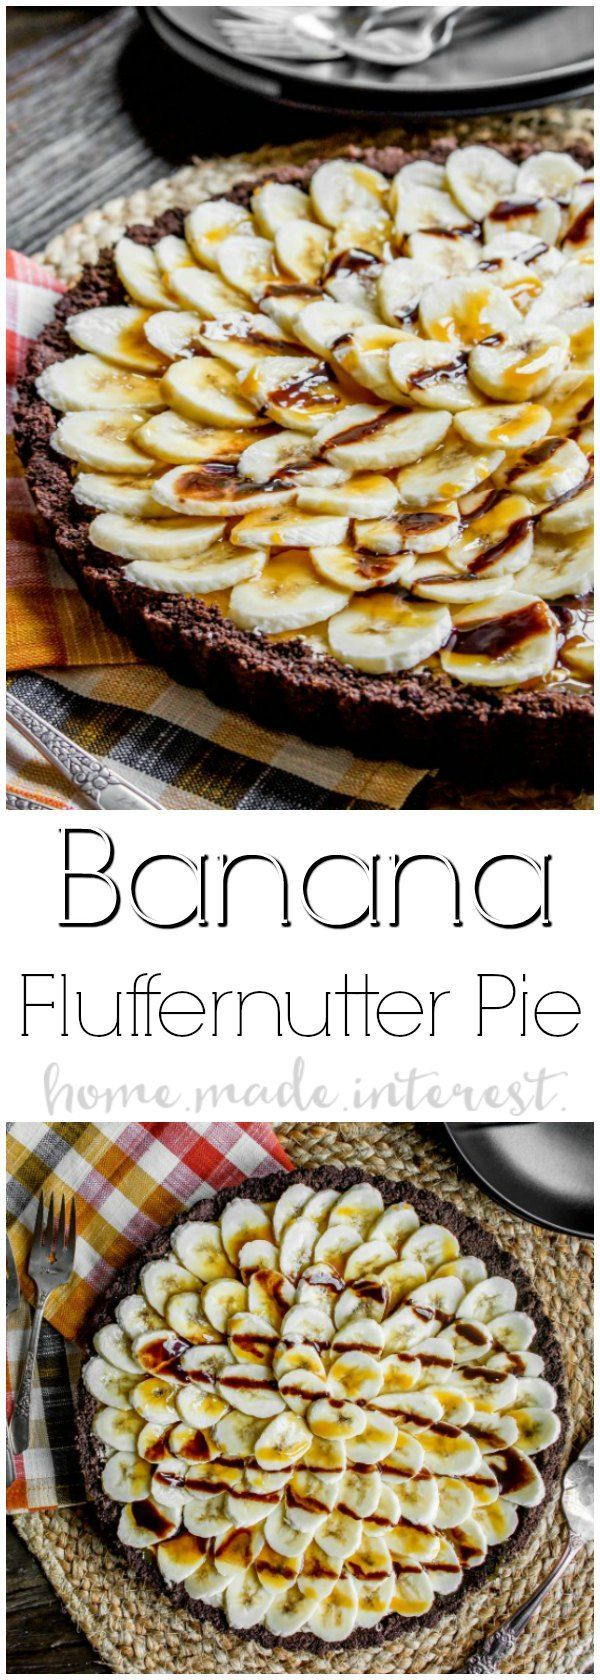 This easy dessert recipe is an almost no bake pie made with fluffernutter! Banana Fluffernutter Pie is a peanut butter twist on a banana cream pie. Chocolate graham cracker crust filled with fluffernutter and topped with fresh slices of bananas. This is a holiday dessert recipe that would make a great Thanksgiving dessert recipe or Christmas dessert recipe. If you like banana cream pie you're going to love this Banana Fluffernutter Pie! #pie #fluffernutter #thanksgivingdessert